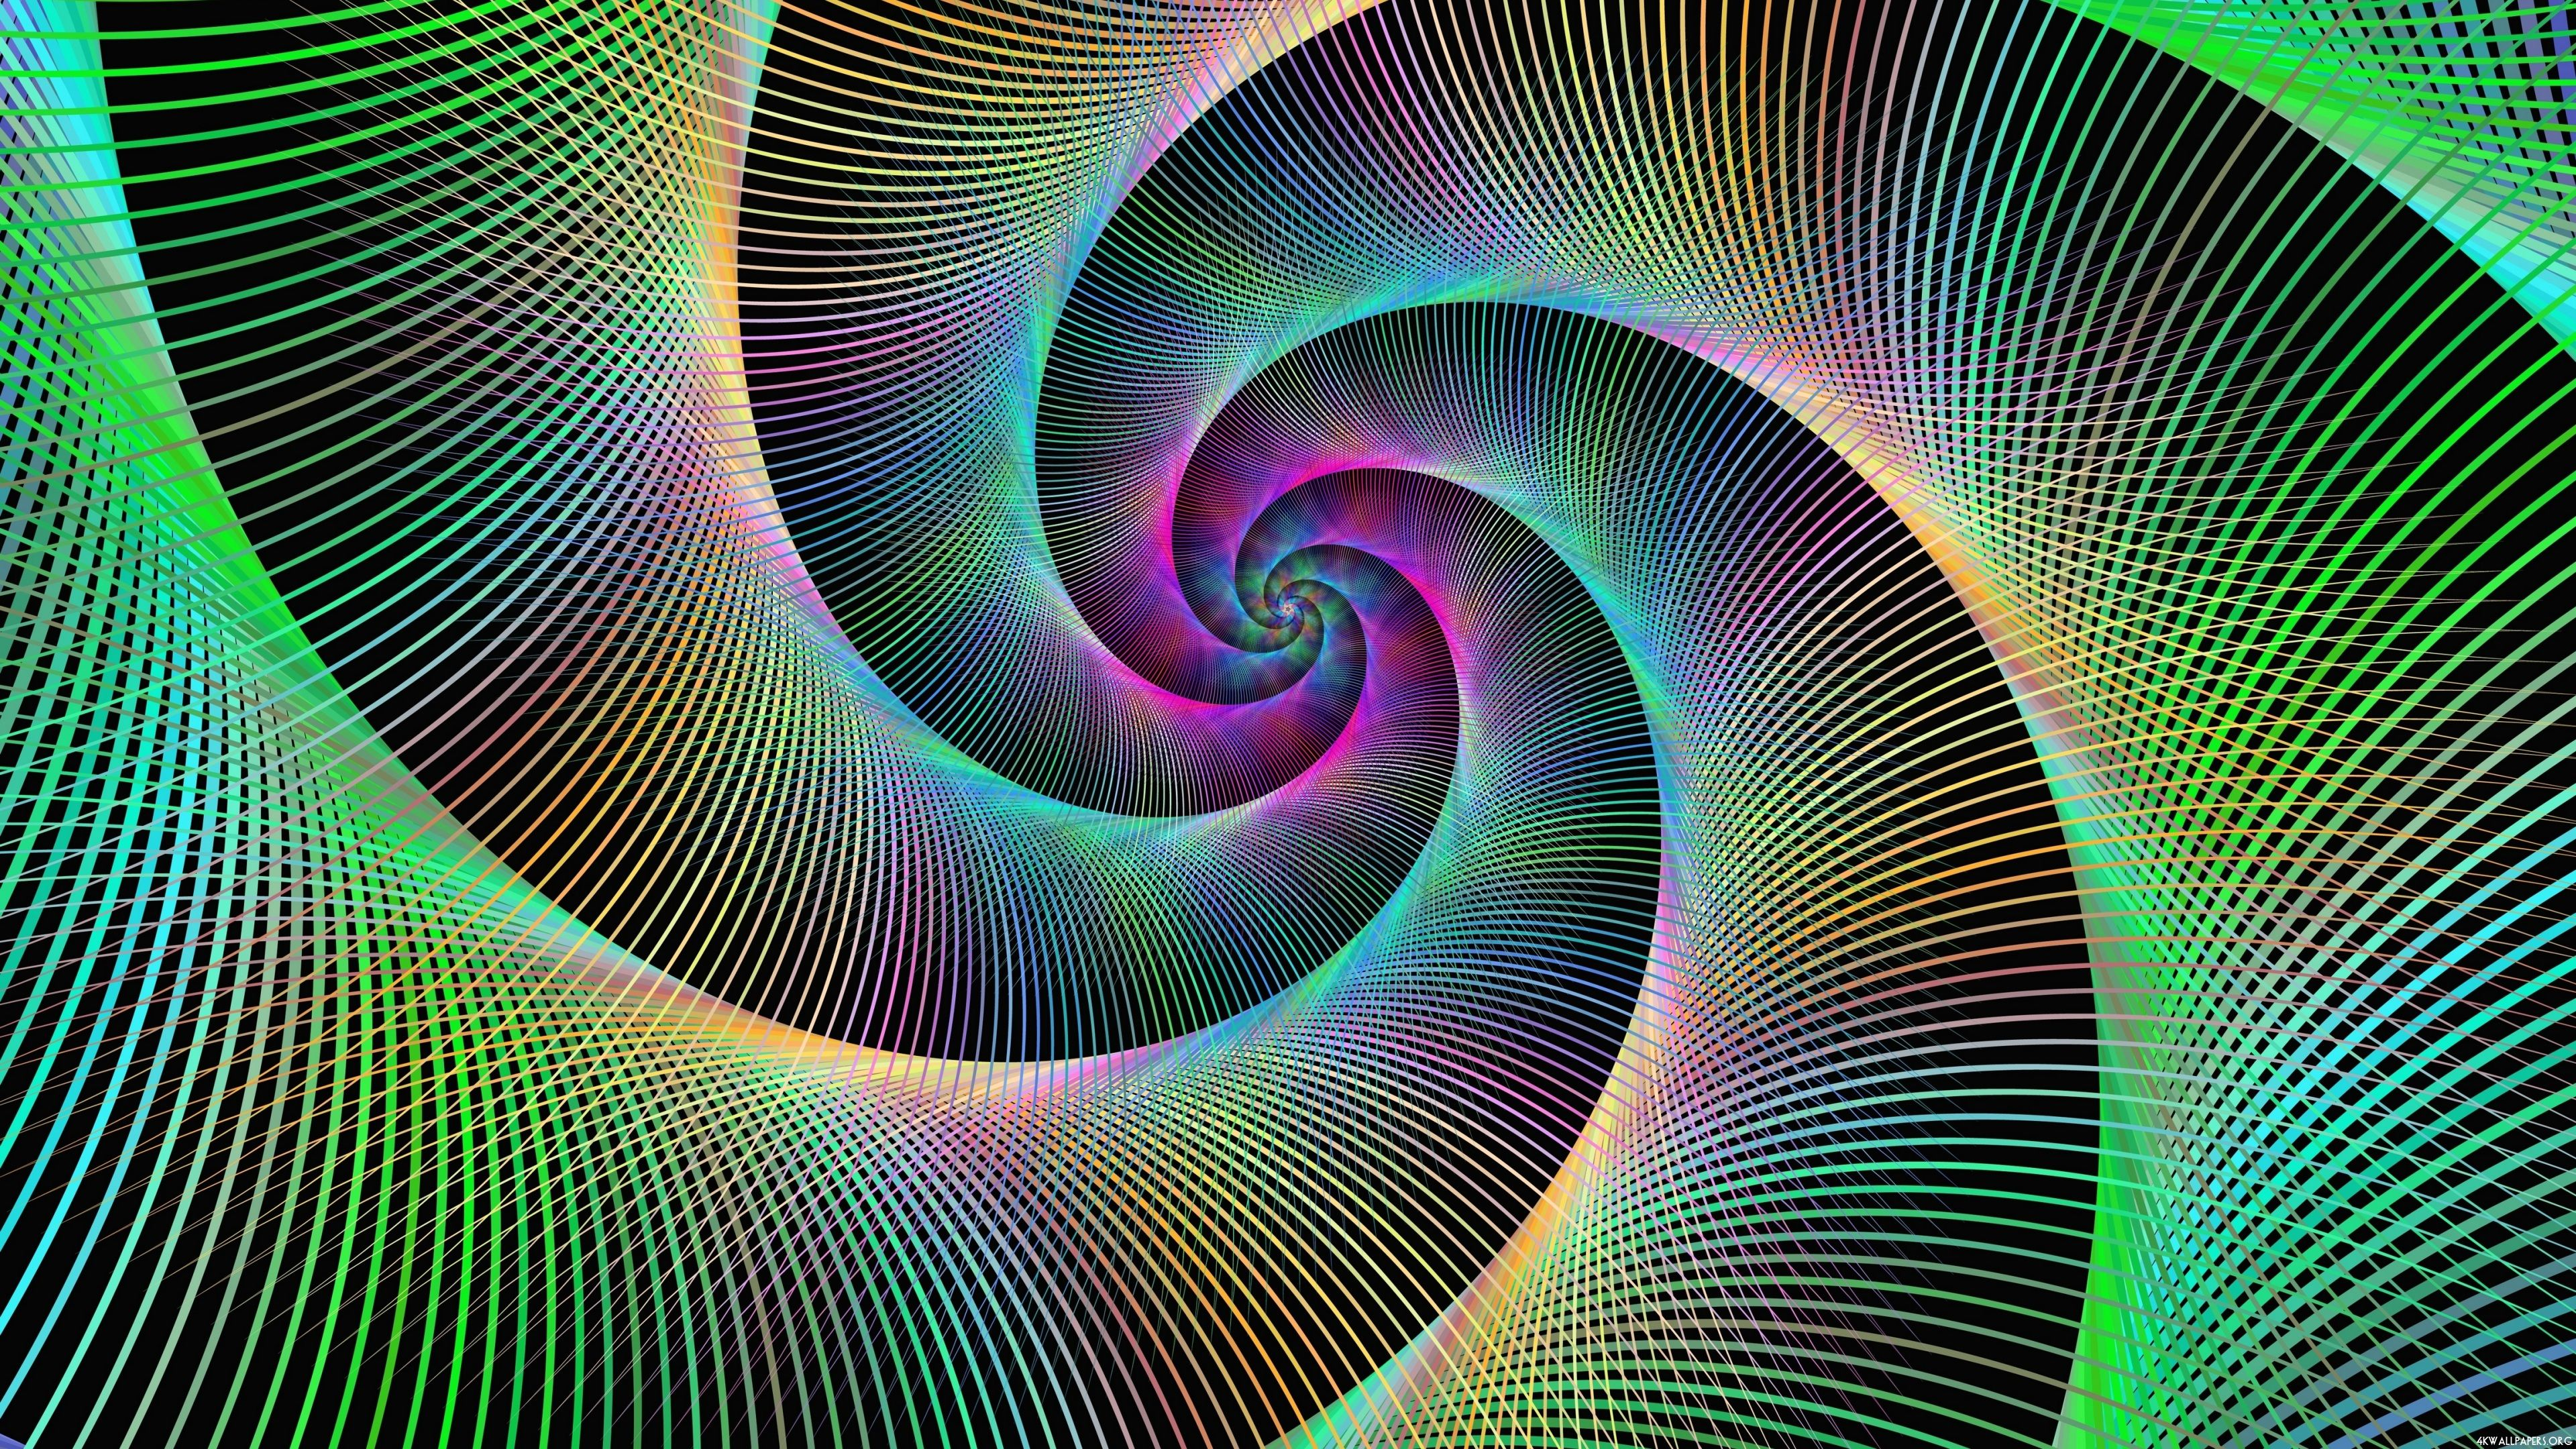 Trippy Fractal Wallpaper Patterns Abstract